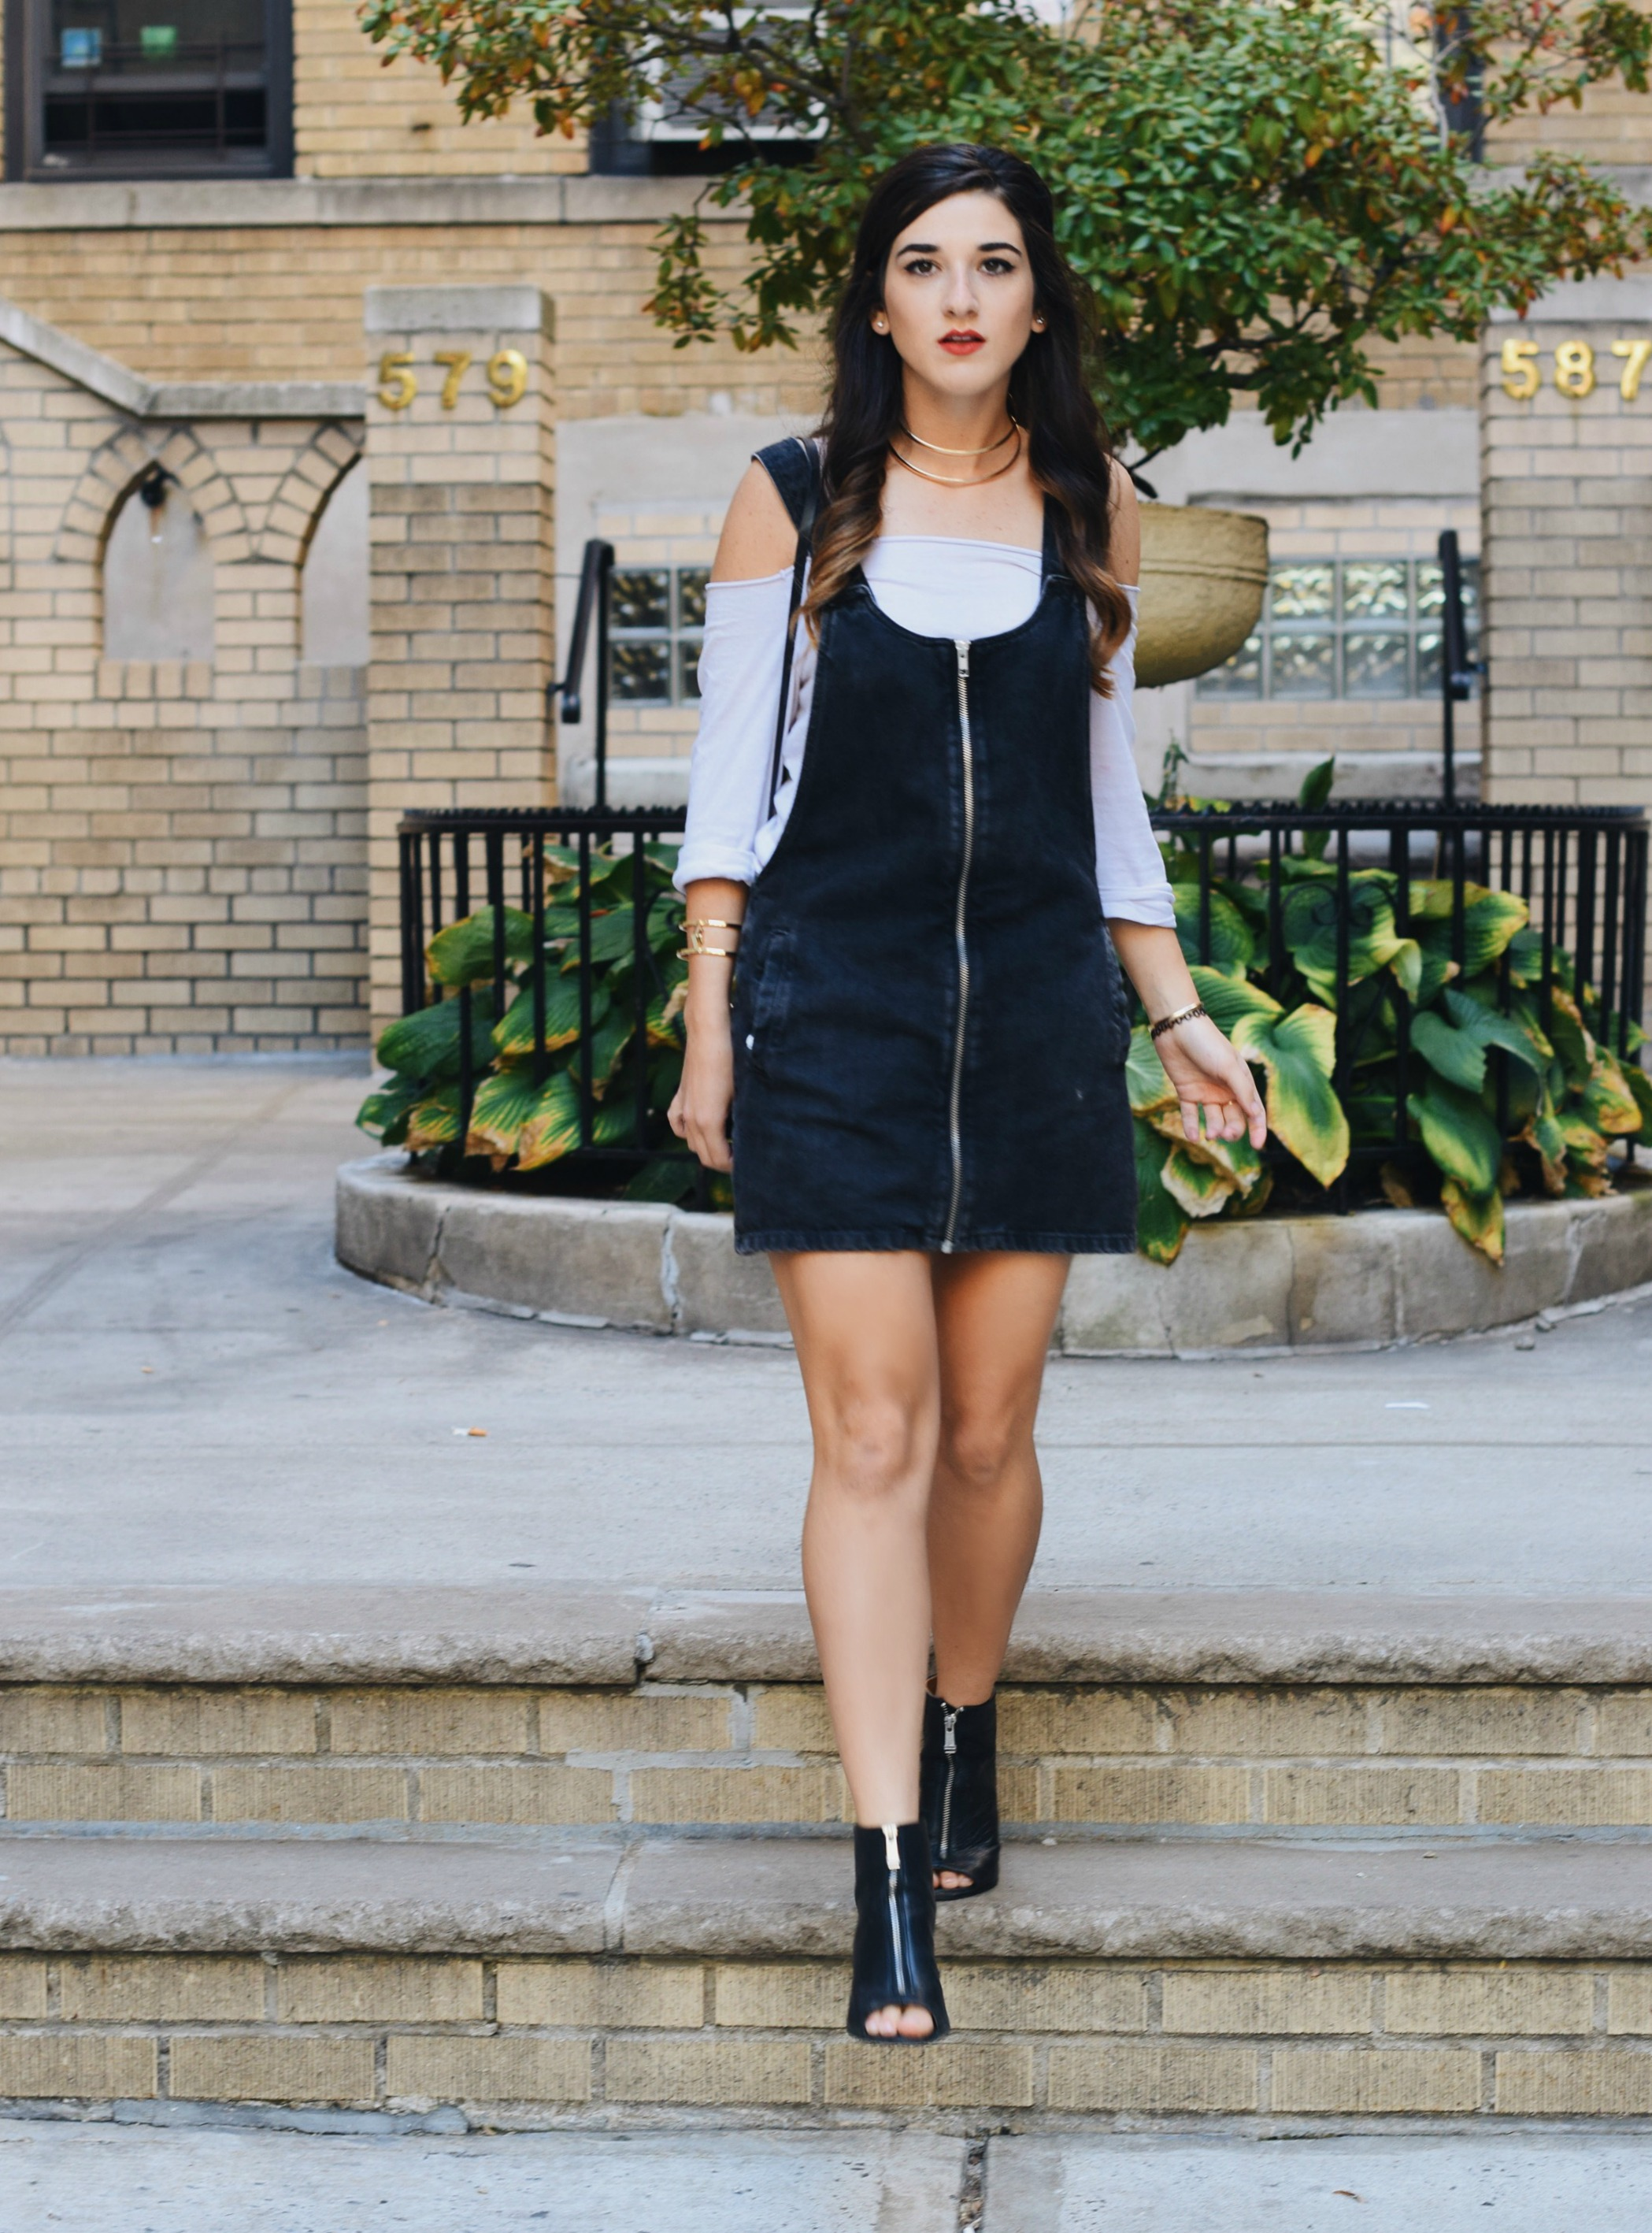 Jean Dress Overalls Off The Shoulder Top Louboutins & Love Fashion Blog Esther Santer Street Style NYC Hair Box Clutch Shoes Denim Gold Jewelry Model Girl Women Trendy Outfit OOTD Bag Inspo Shop Collar Necklace Fall Nordstrom Zipper Black Booties Zara.JPG